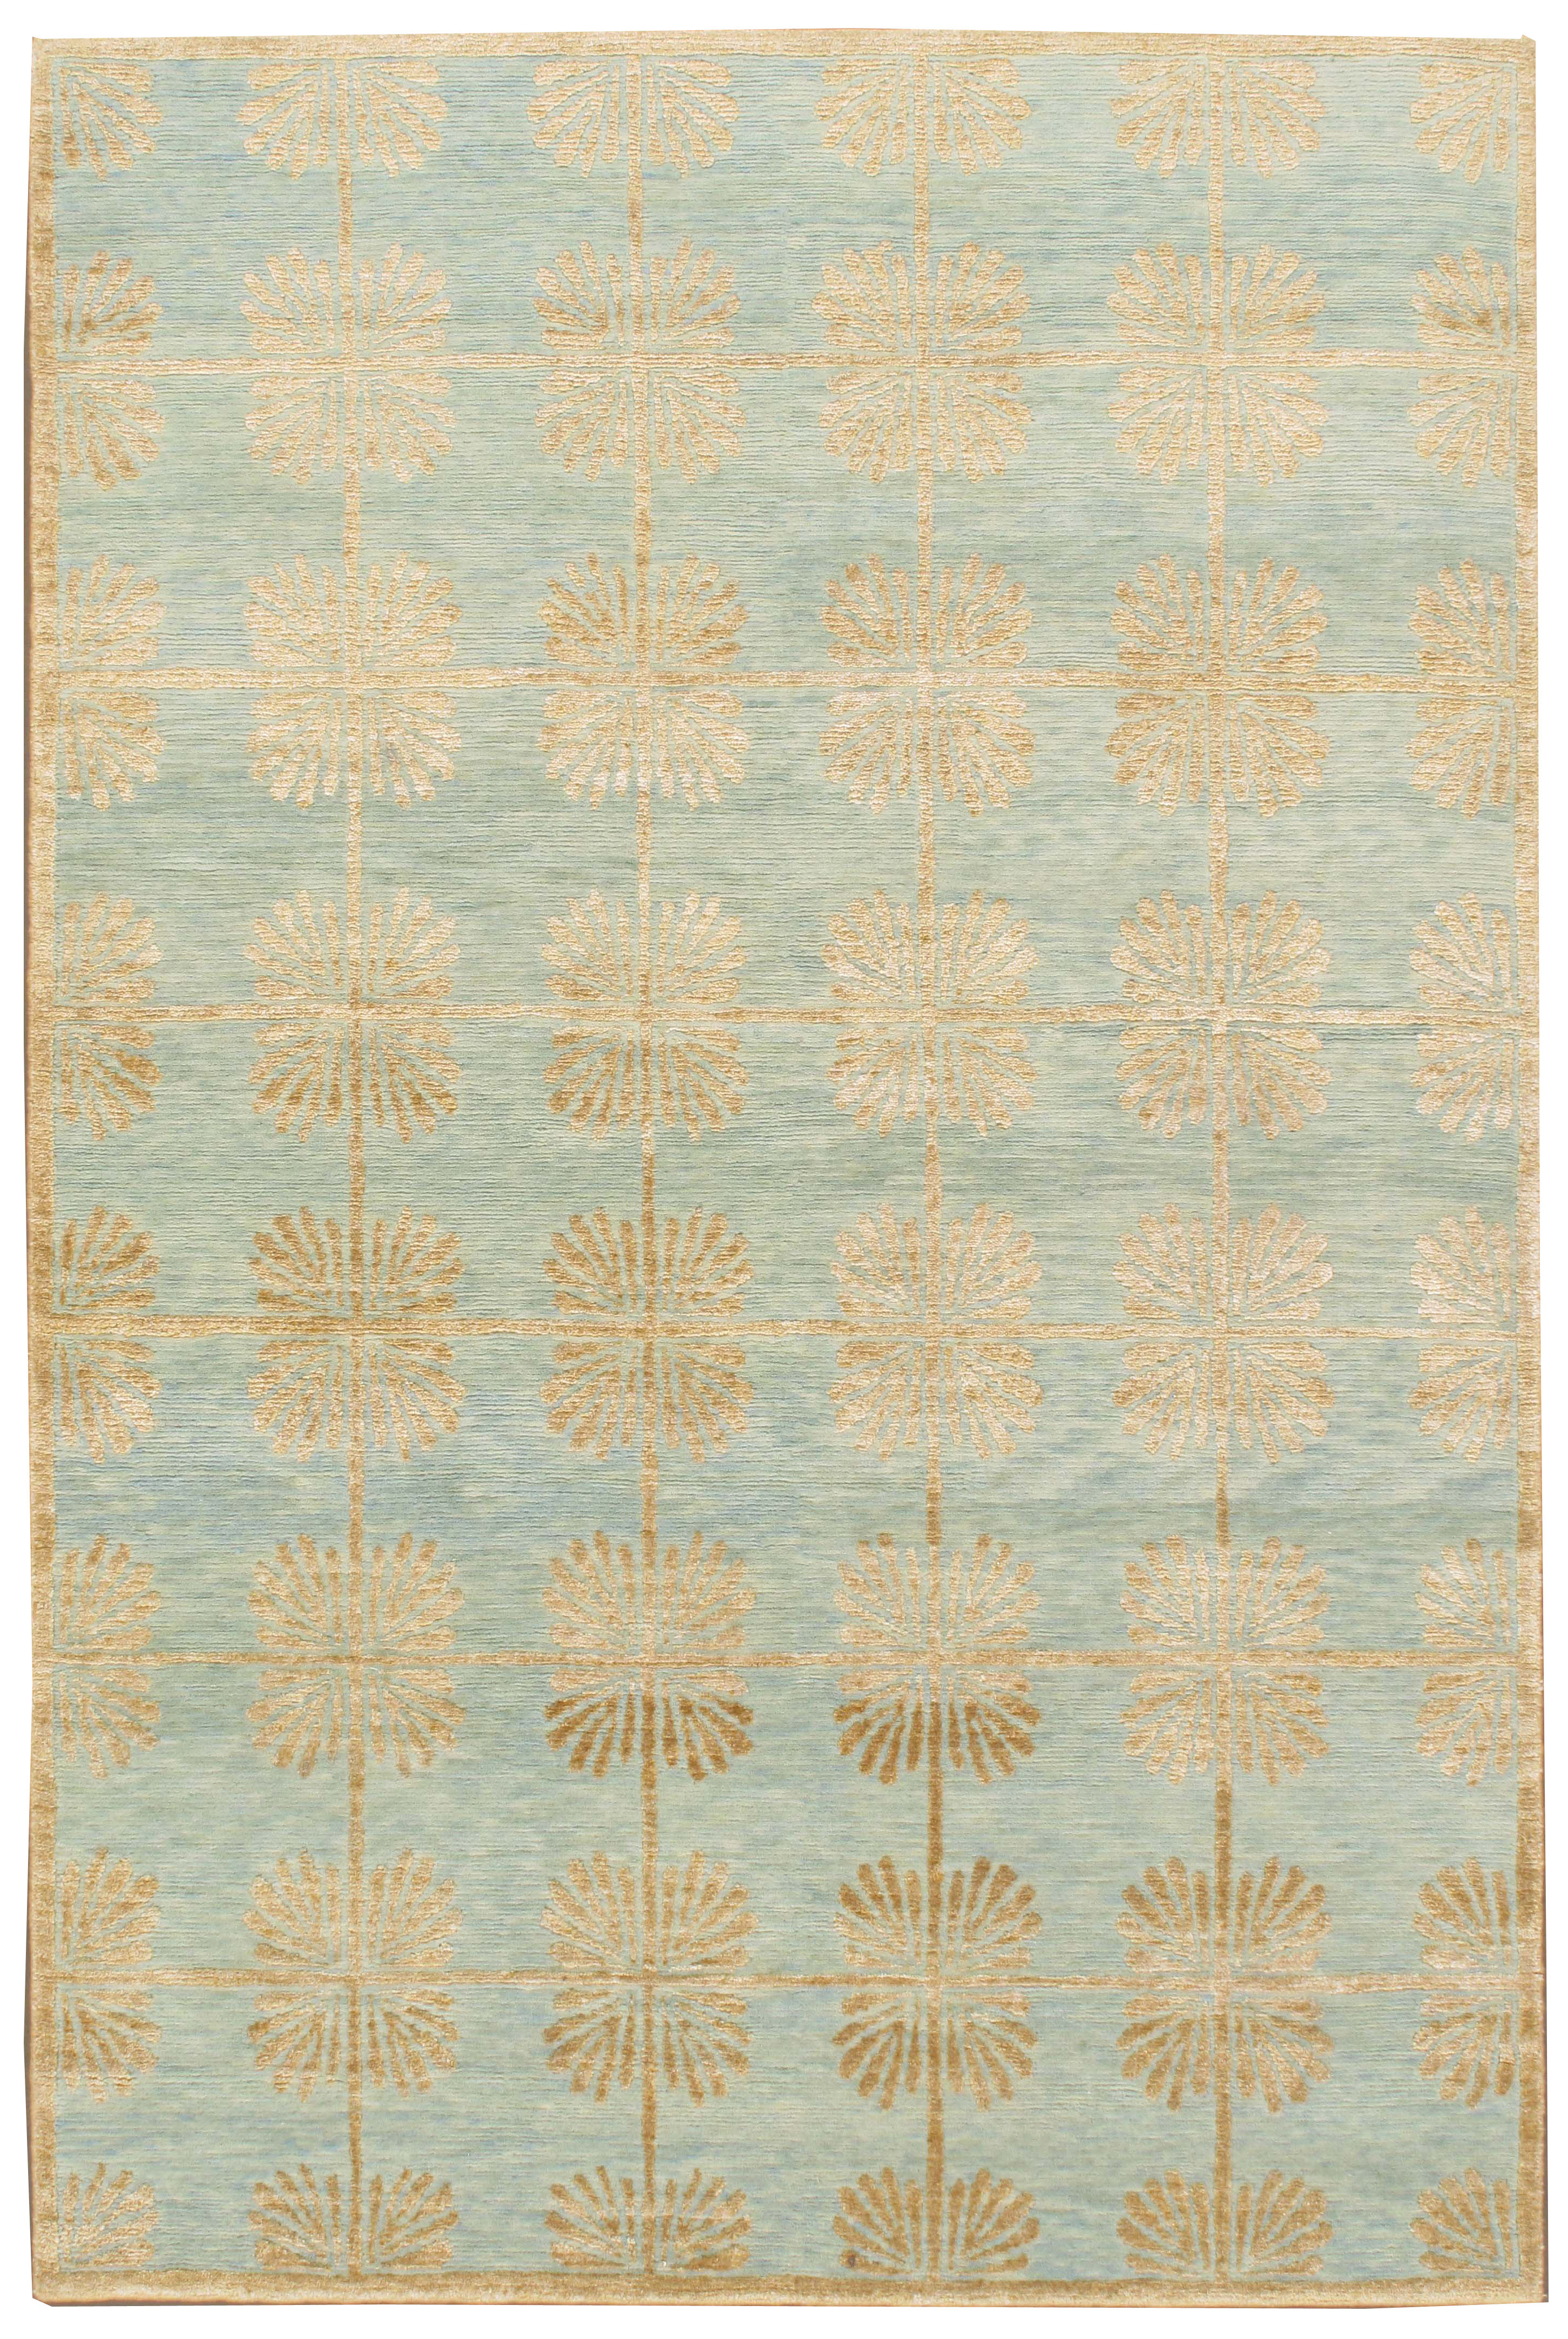 Sea Glass Lace Contemporary Rug